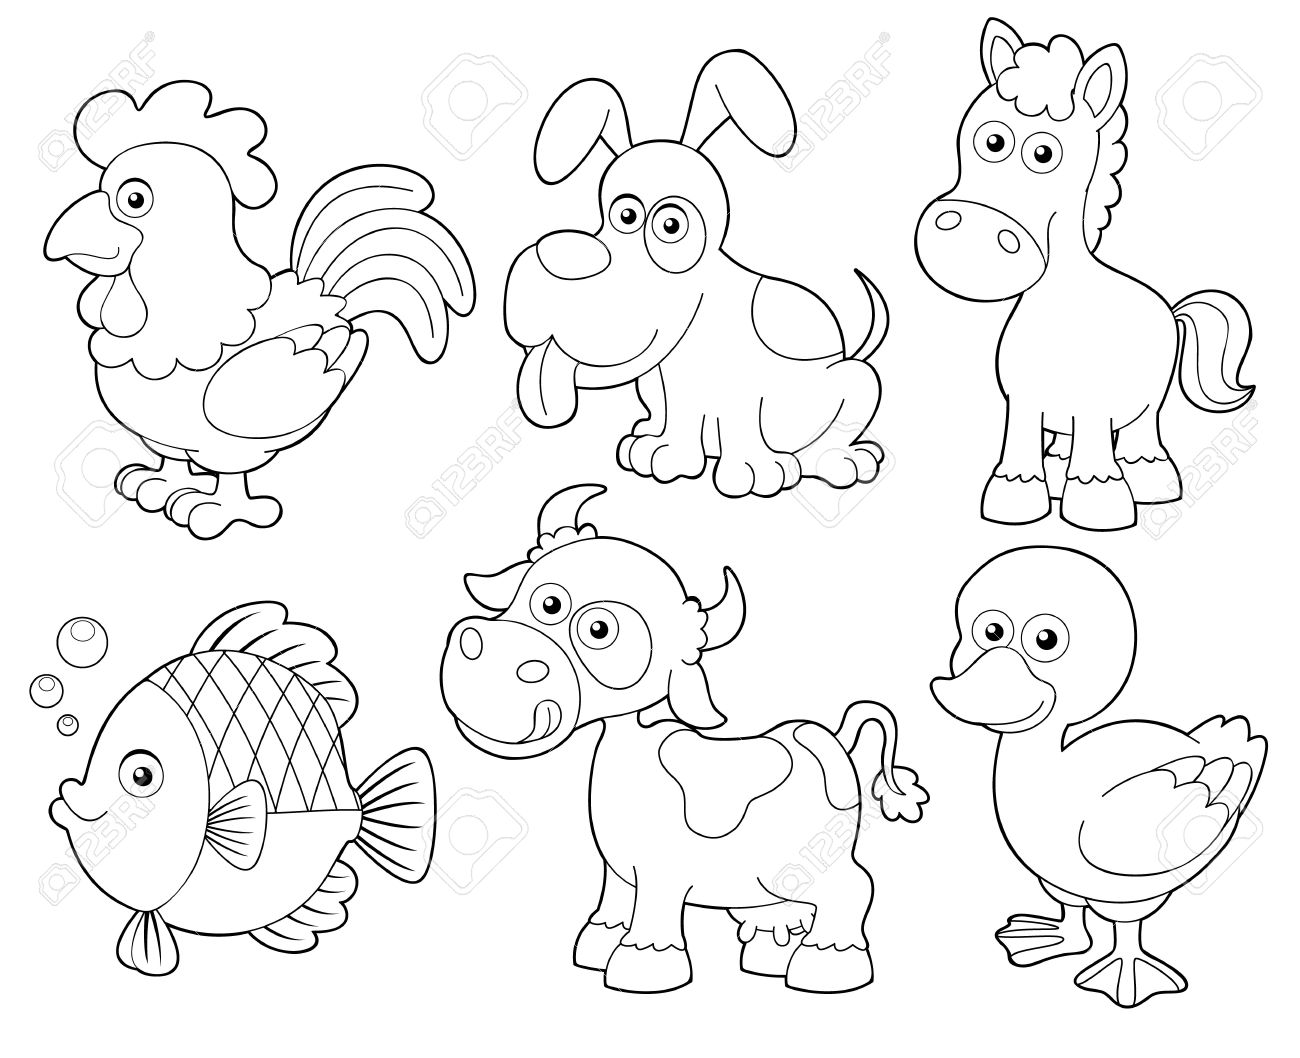 christingle colouring activities : Co Coloring Book Kea Color Book Outline Vector Illustration Of Farm Animals Cartoon Coloring Book